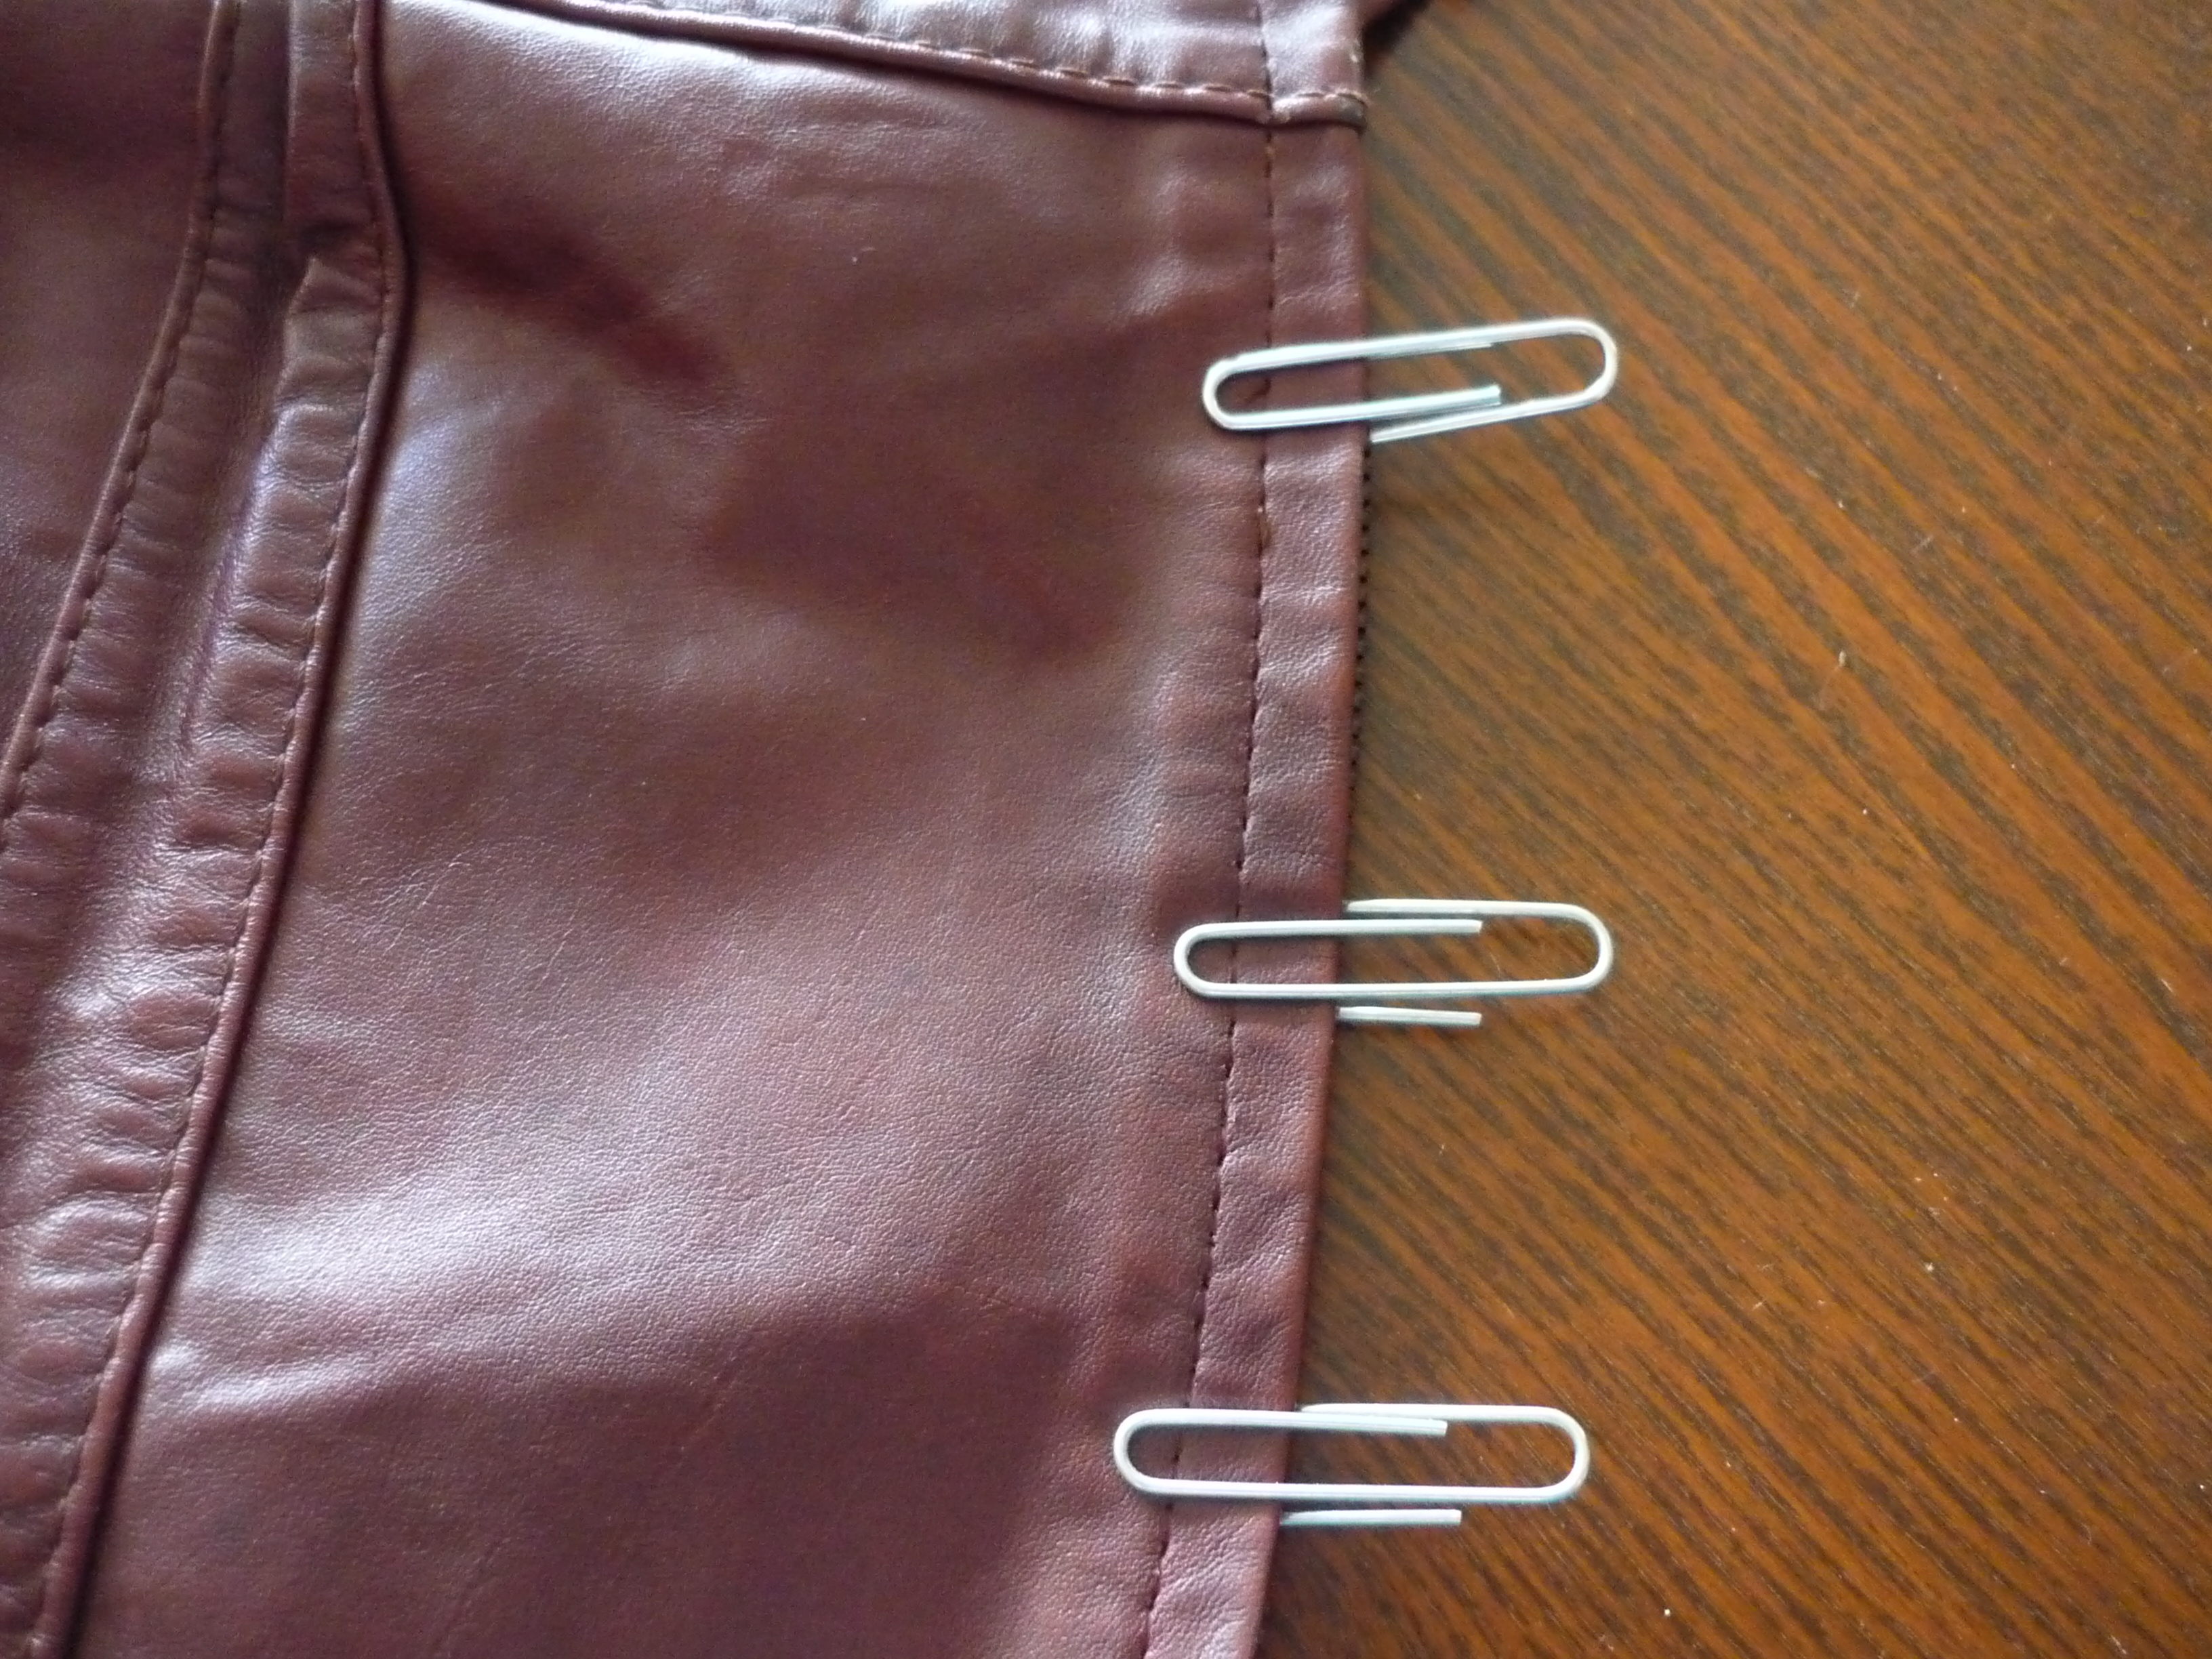 Leather jacket repair vancouver - Continue Pinning With Paper Clips Along The Length Of The Zipper At The Top Tuck The Tail End Inside So It S Not Visible